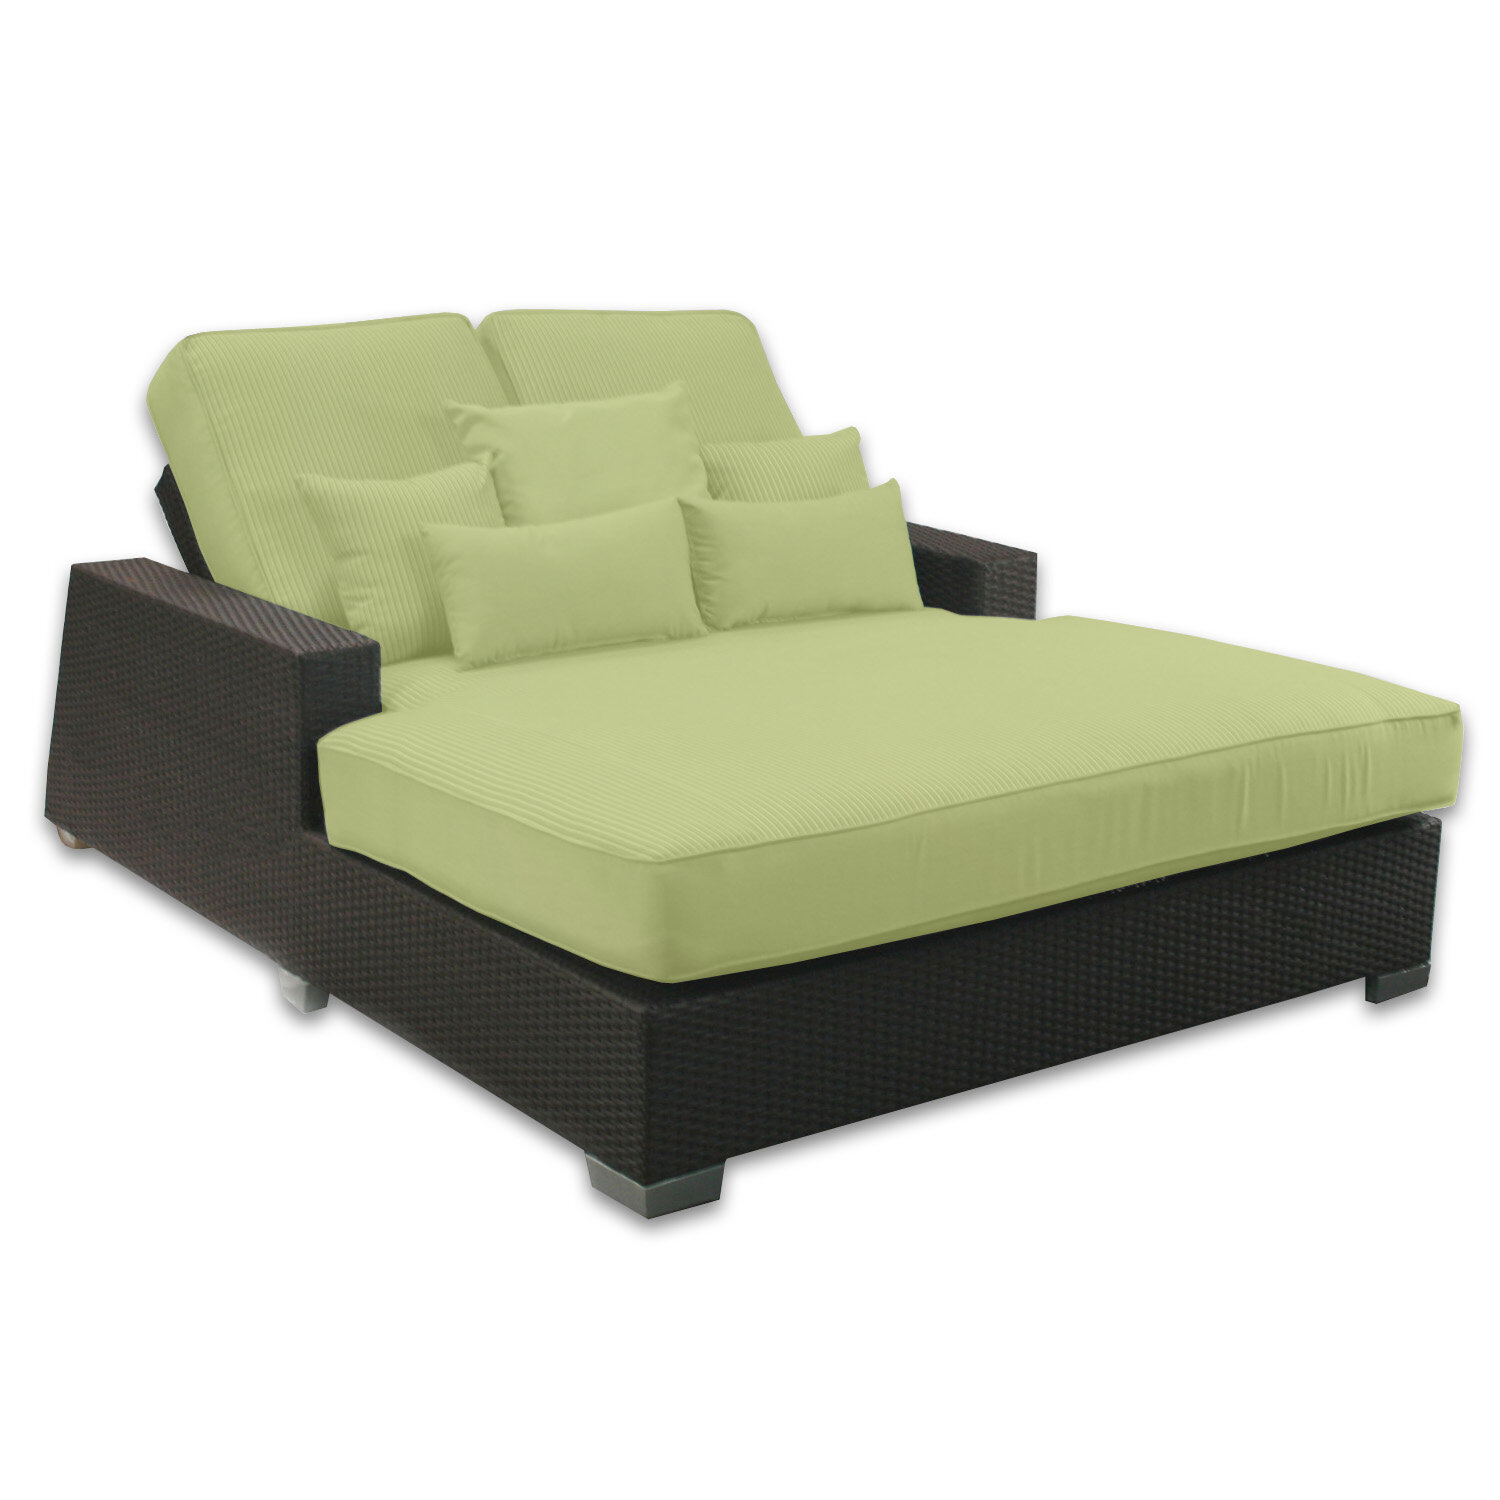 Patio Heaven Signature Double Chaise Lounge With Cushion Reviews Wayfair